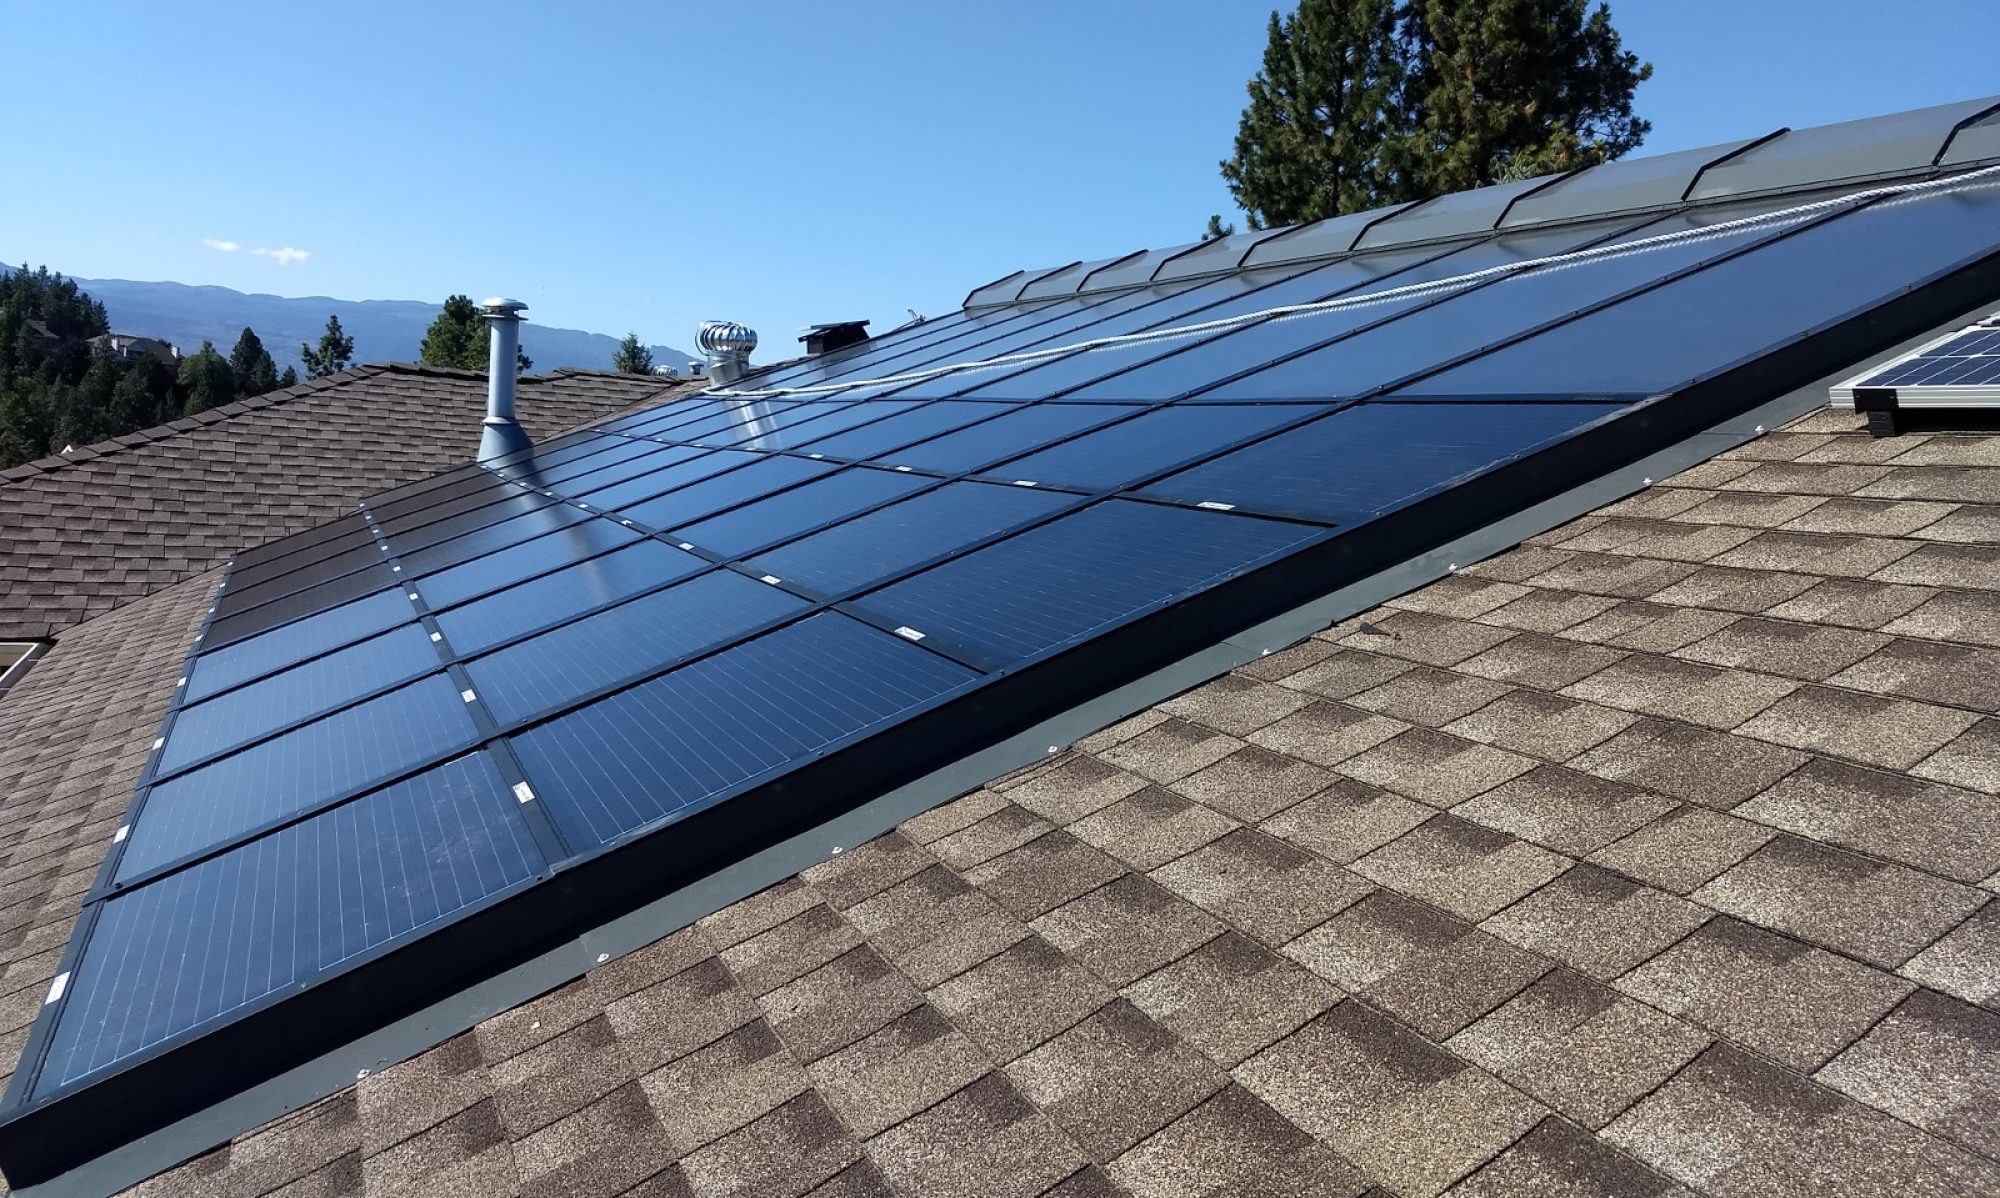 CRE Green creates the rare opportunity for you to use the SUN to heat/cool & power your home!